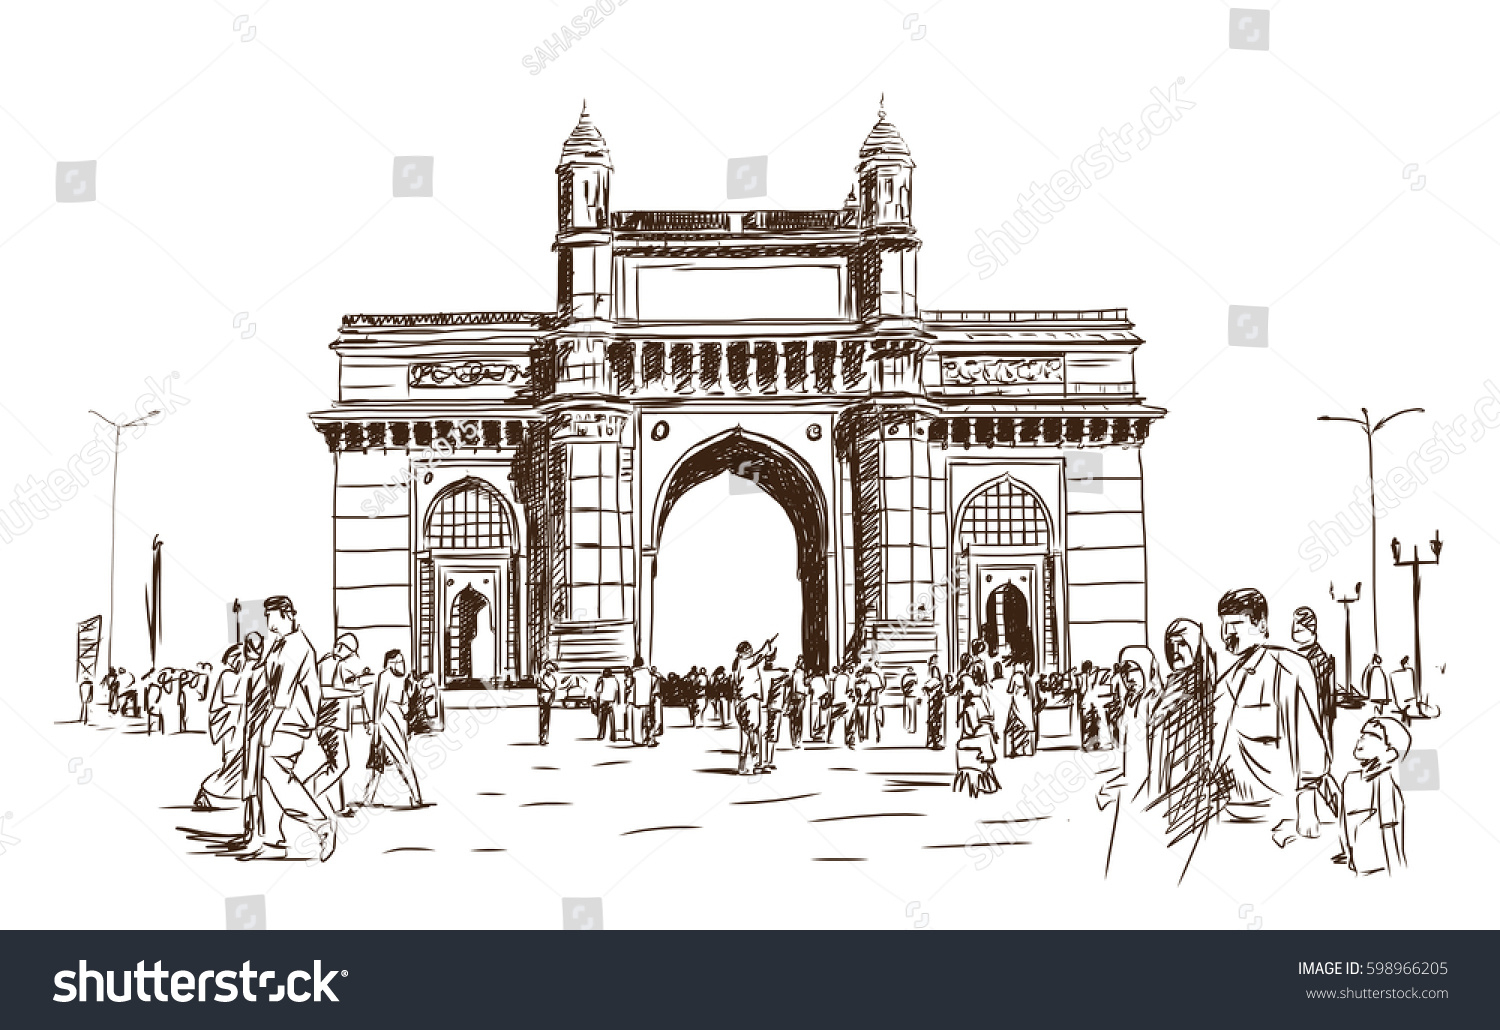 1500x1030 India Gate Images Pencil Drawing Hand Drawn Sketch Gate Way India